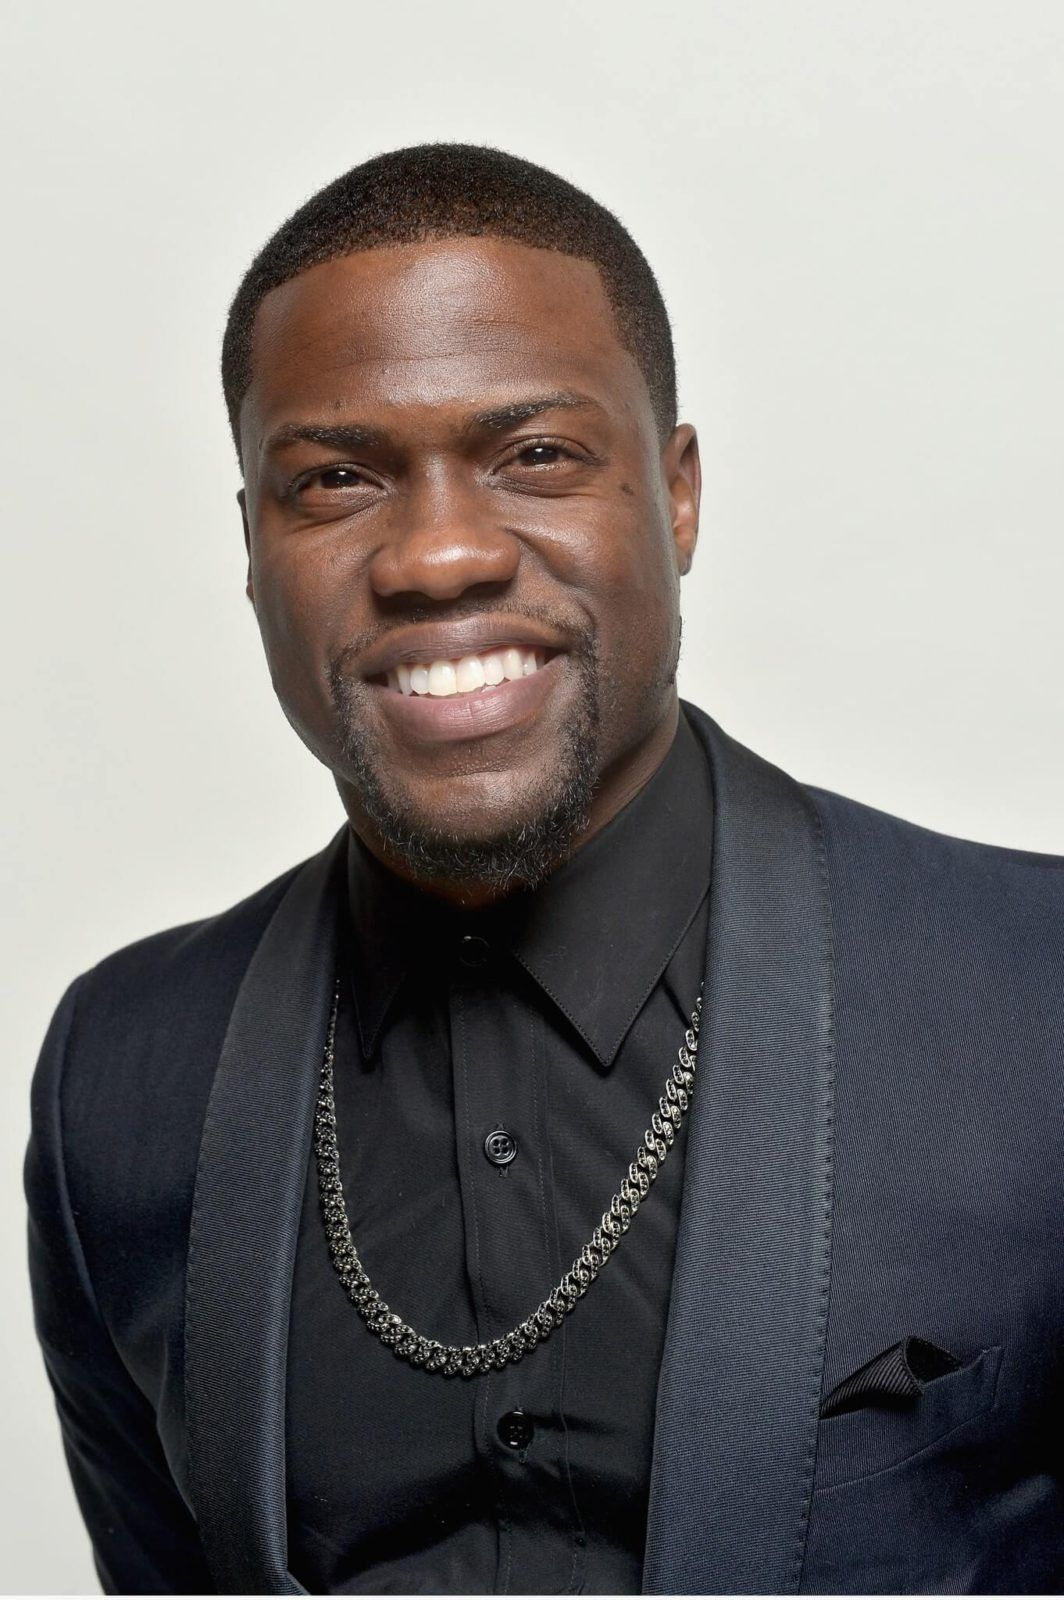 kevin hart wallpapers 3